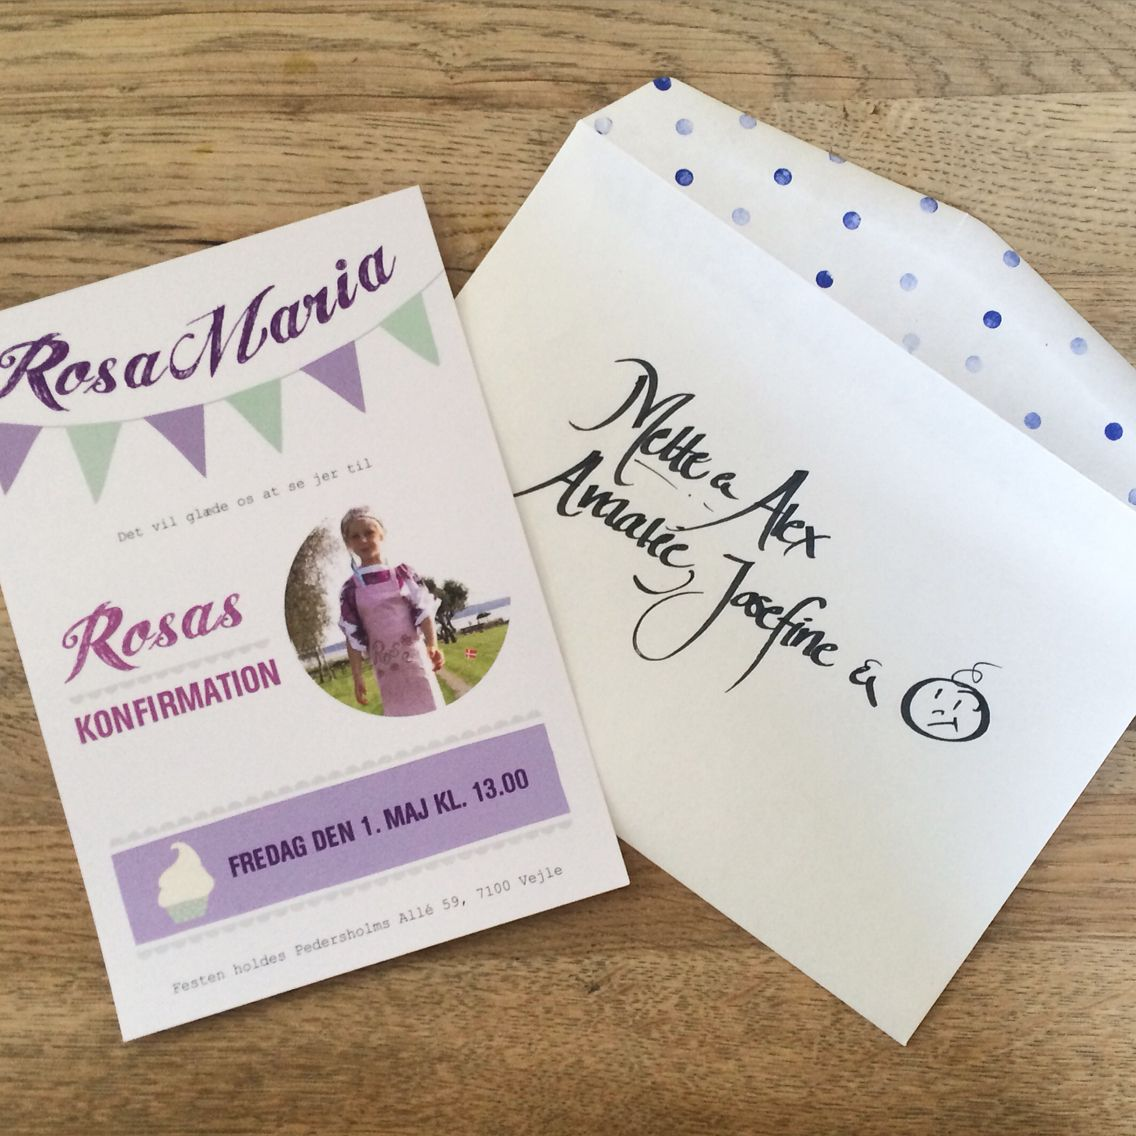 Invitation Til Rosas Konfirmation Invitation